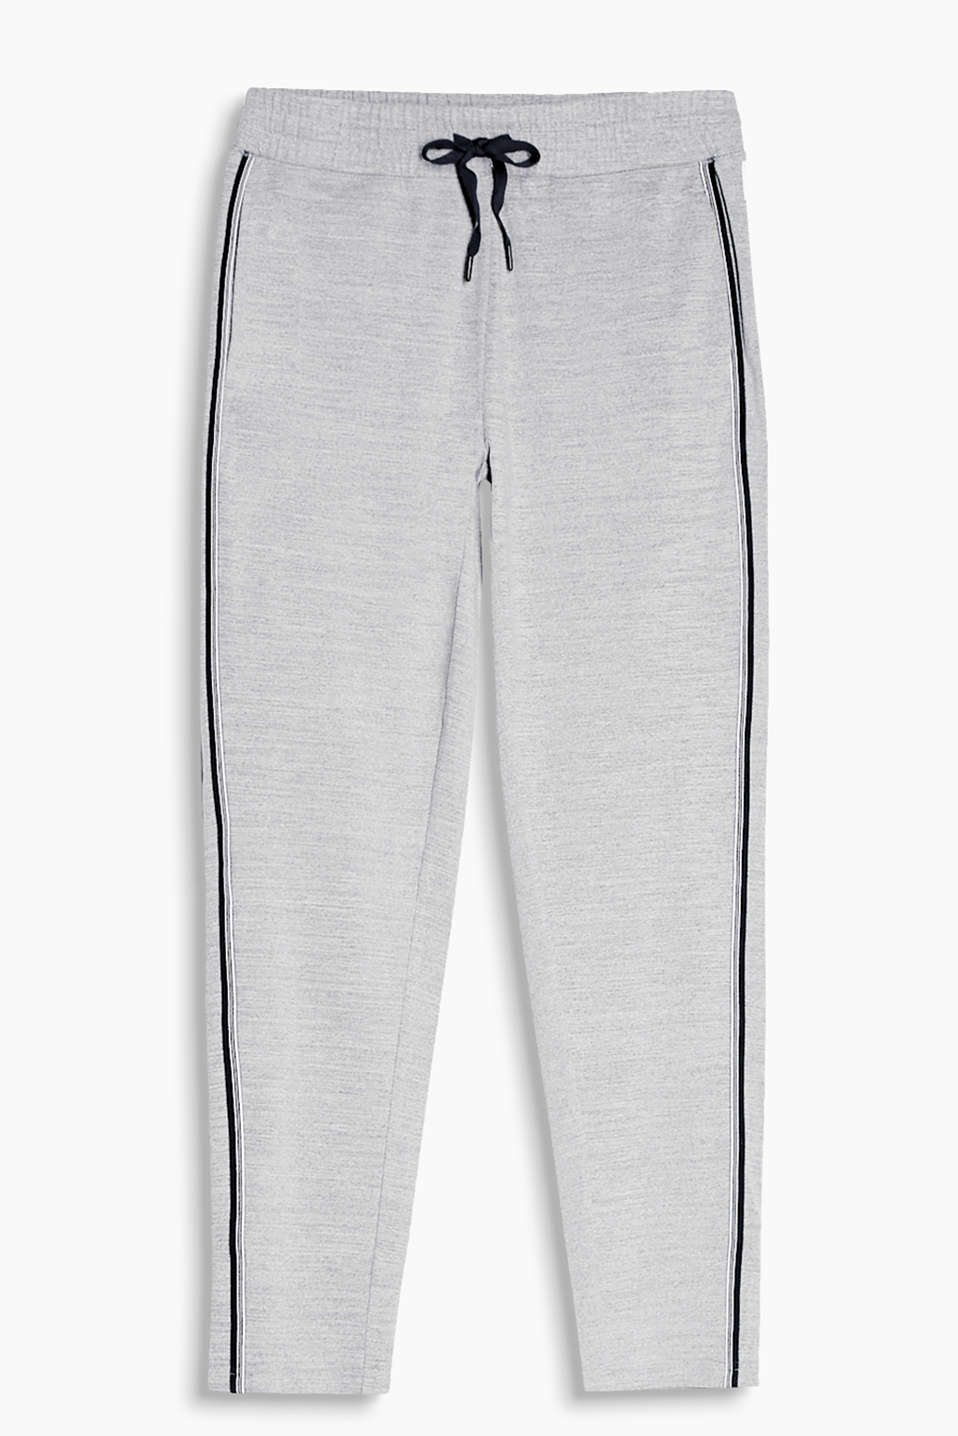 Melange active trousers with woven tape appliquéd at the sides, E-DRY